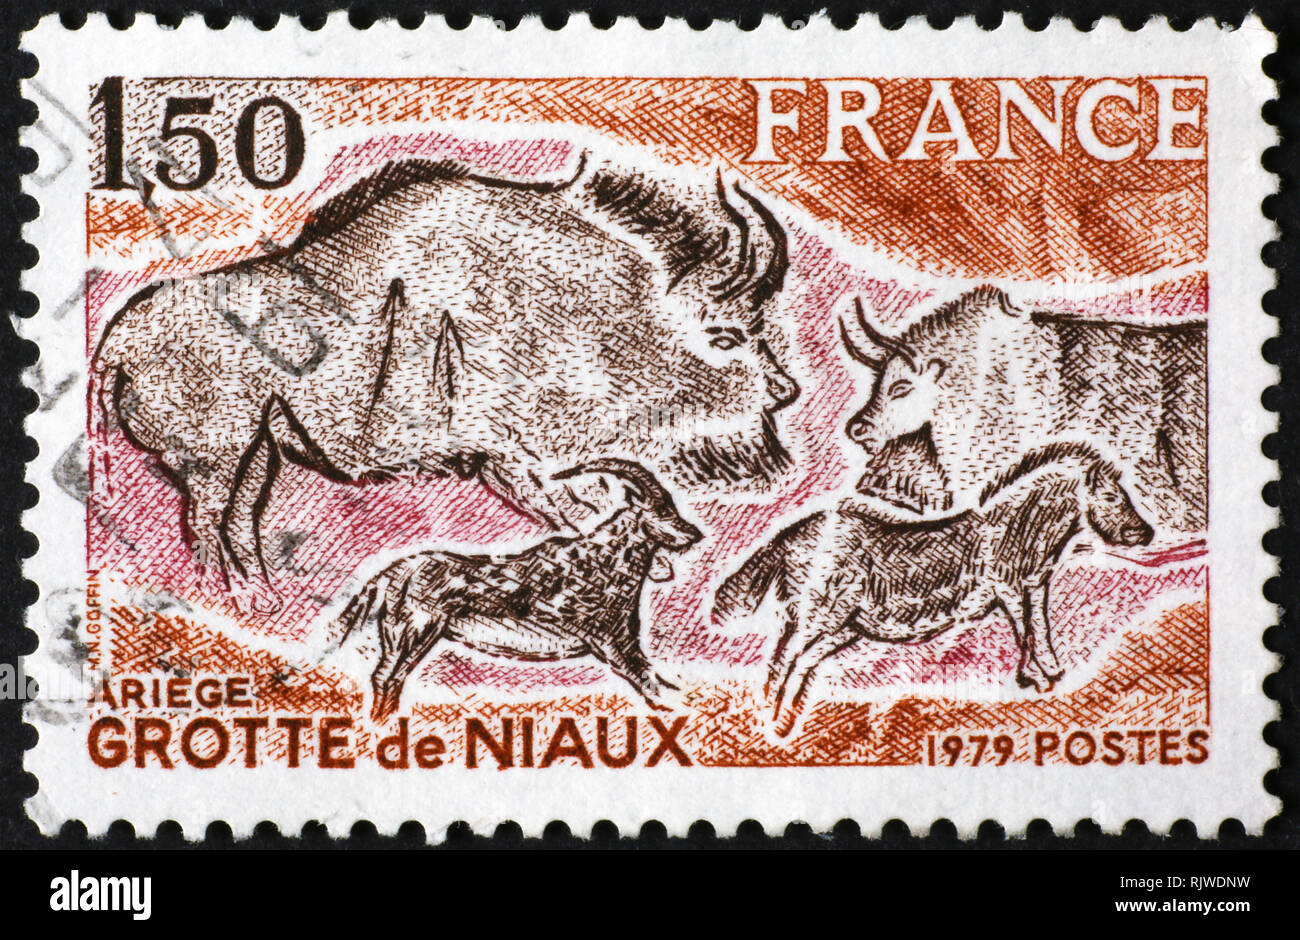 Prehistoric depictions of Niaux on french postage stamp - Stock Image